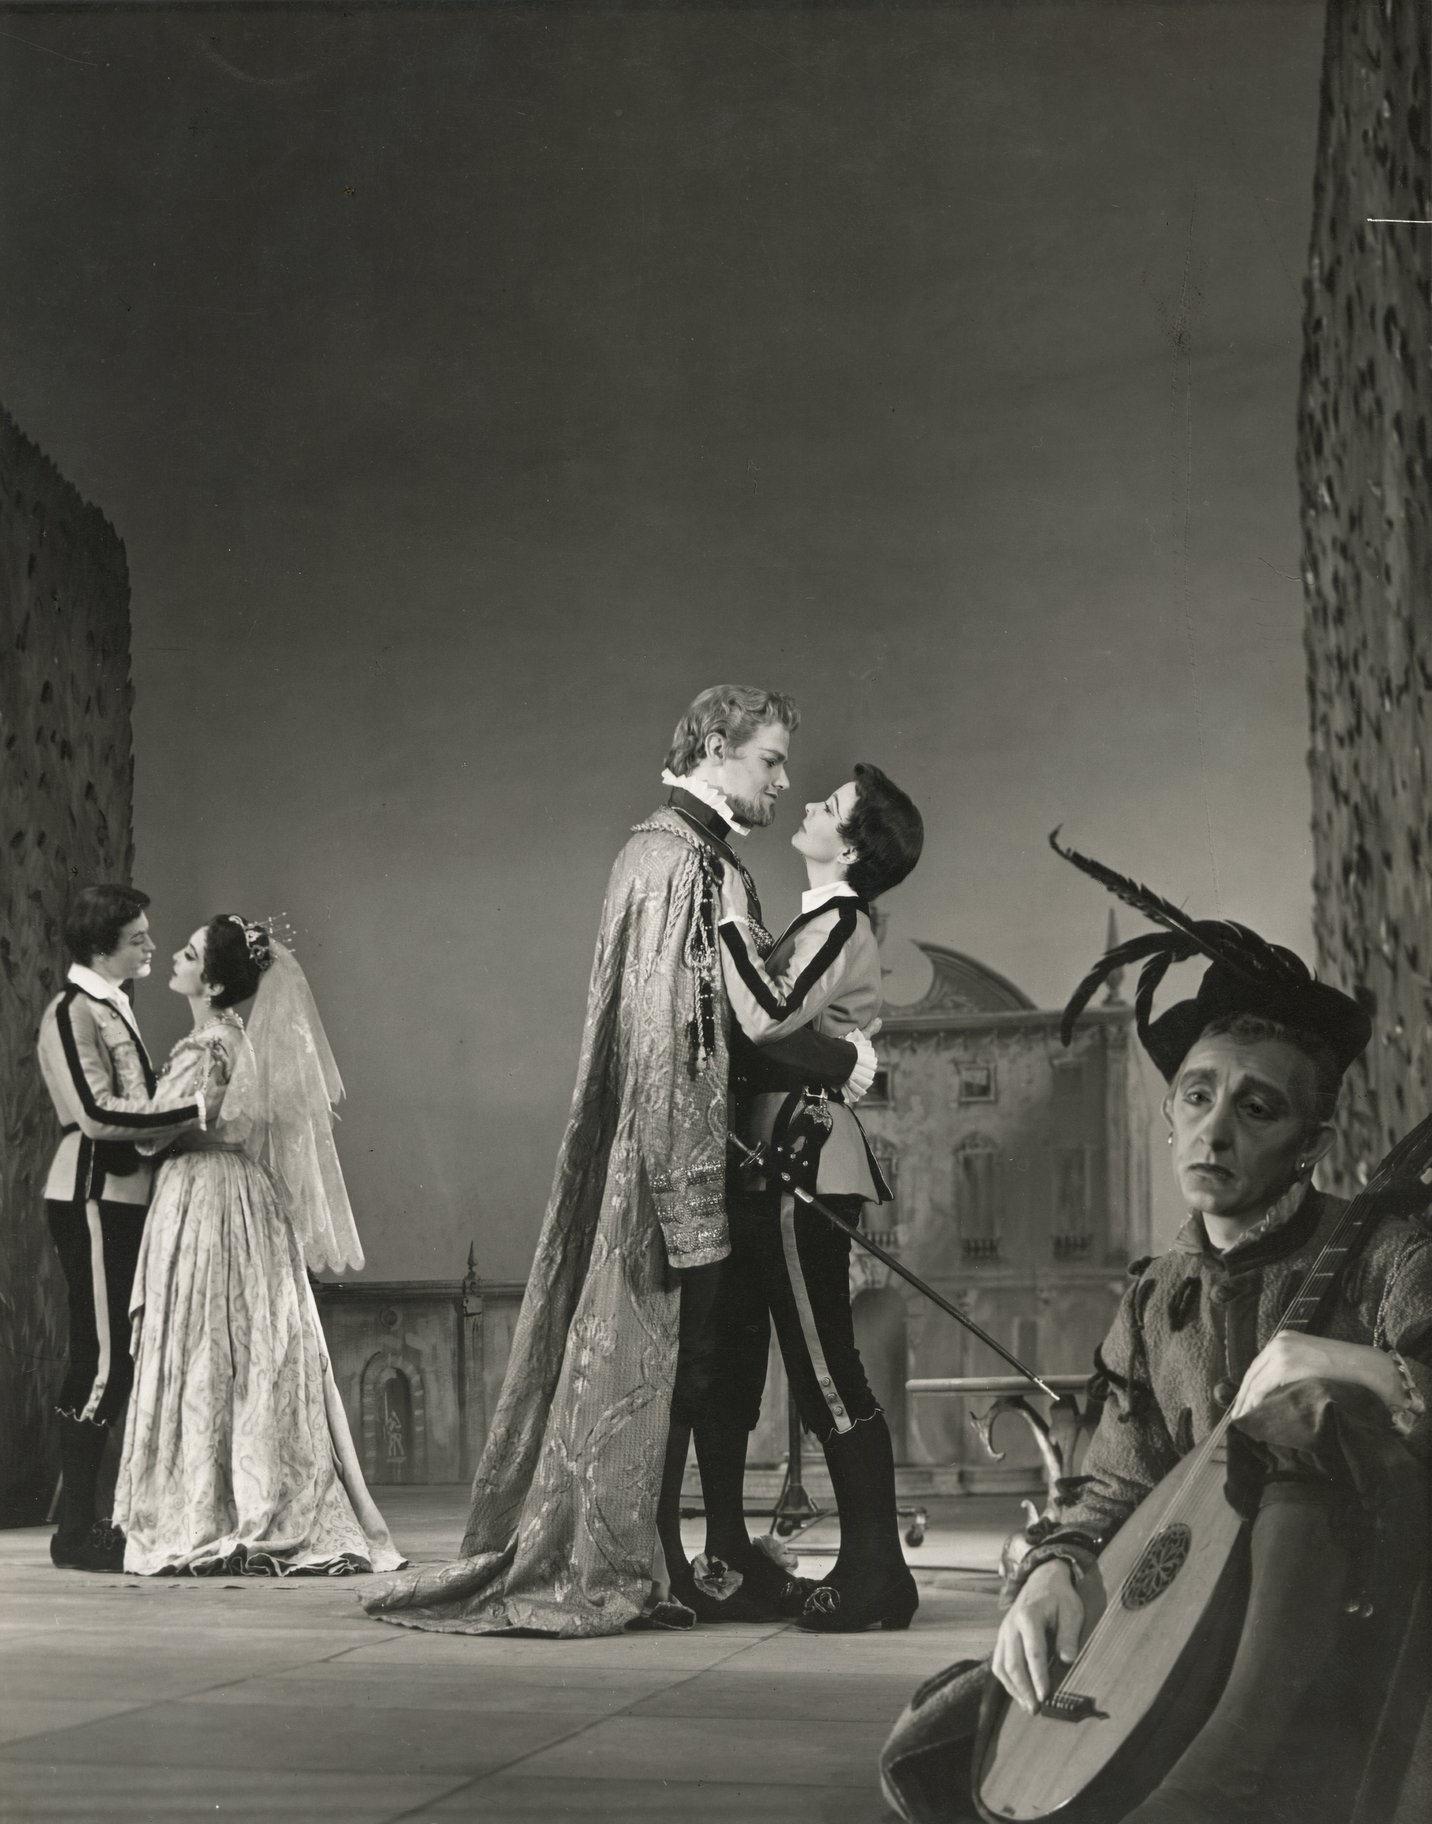 Viola stands with Orsino and Sebastian stands with Olivia both in loving embraces while Feste sits and looks sad in the 1955 production of Twelfth Night.